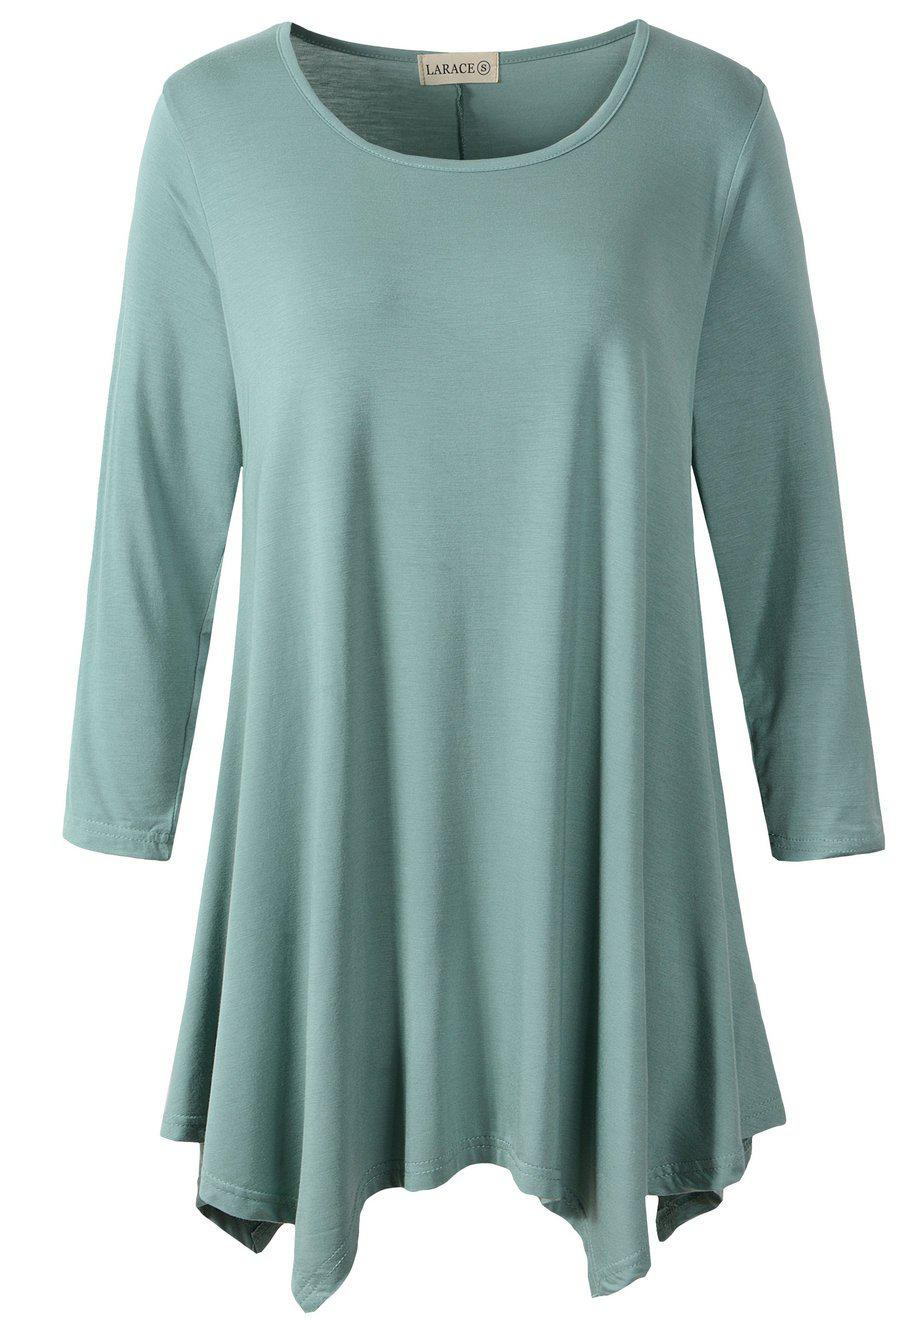 LARACE 3/4 Sleeve Plus Size Tunic Tops Loose Basic Shirt-LARACE